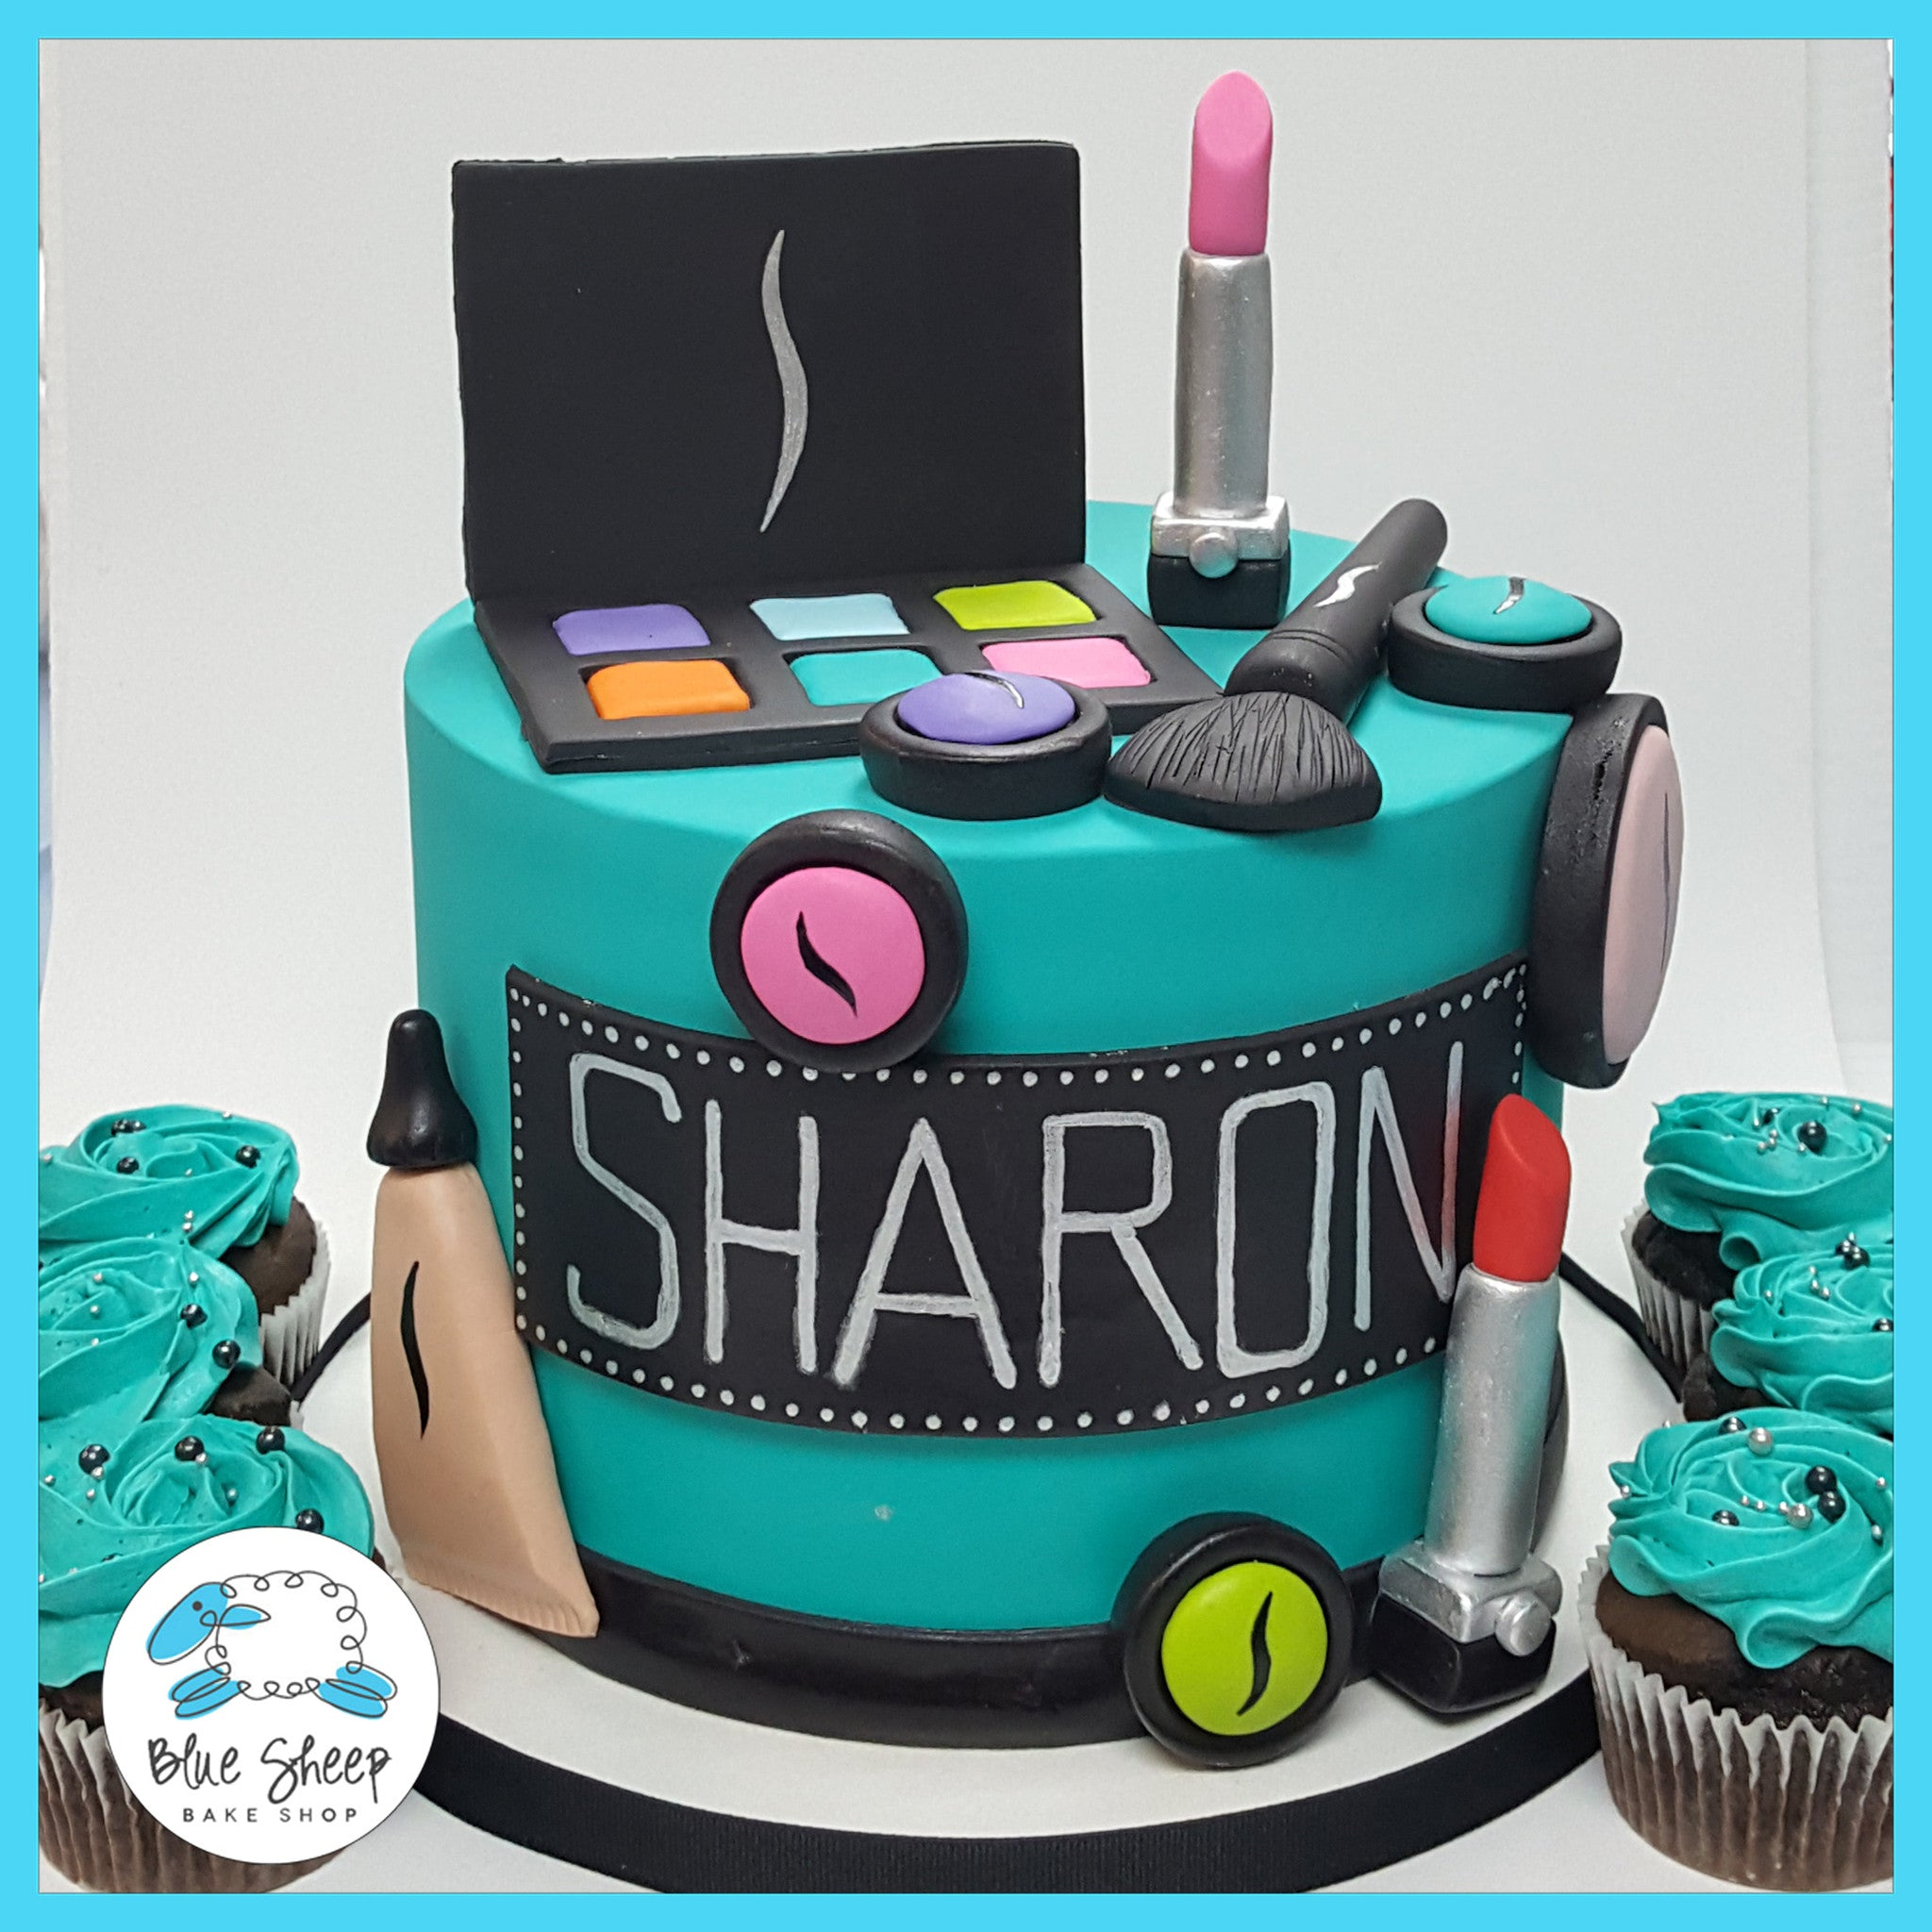 Sharons Sephora Makeup Birthday Cake Blue Sheep Bake Shop